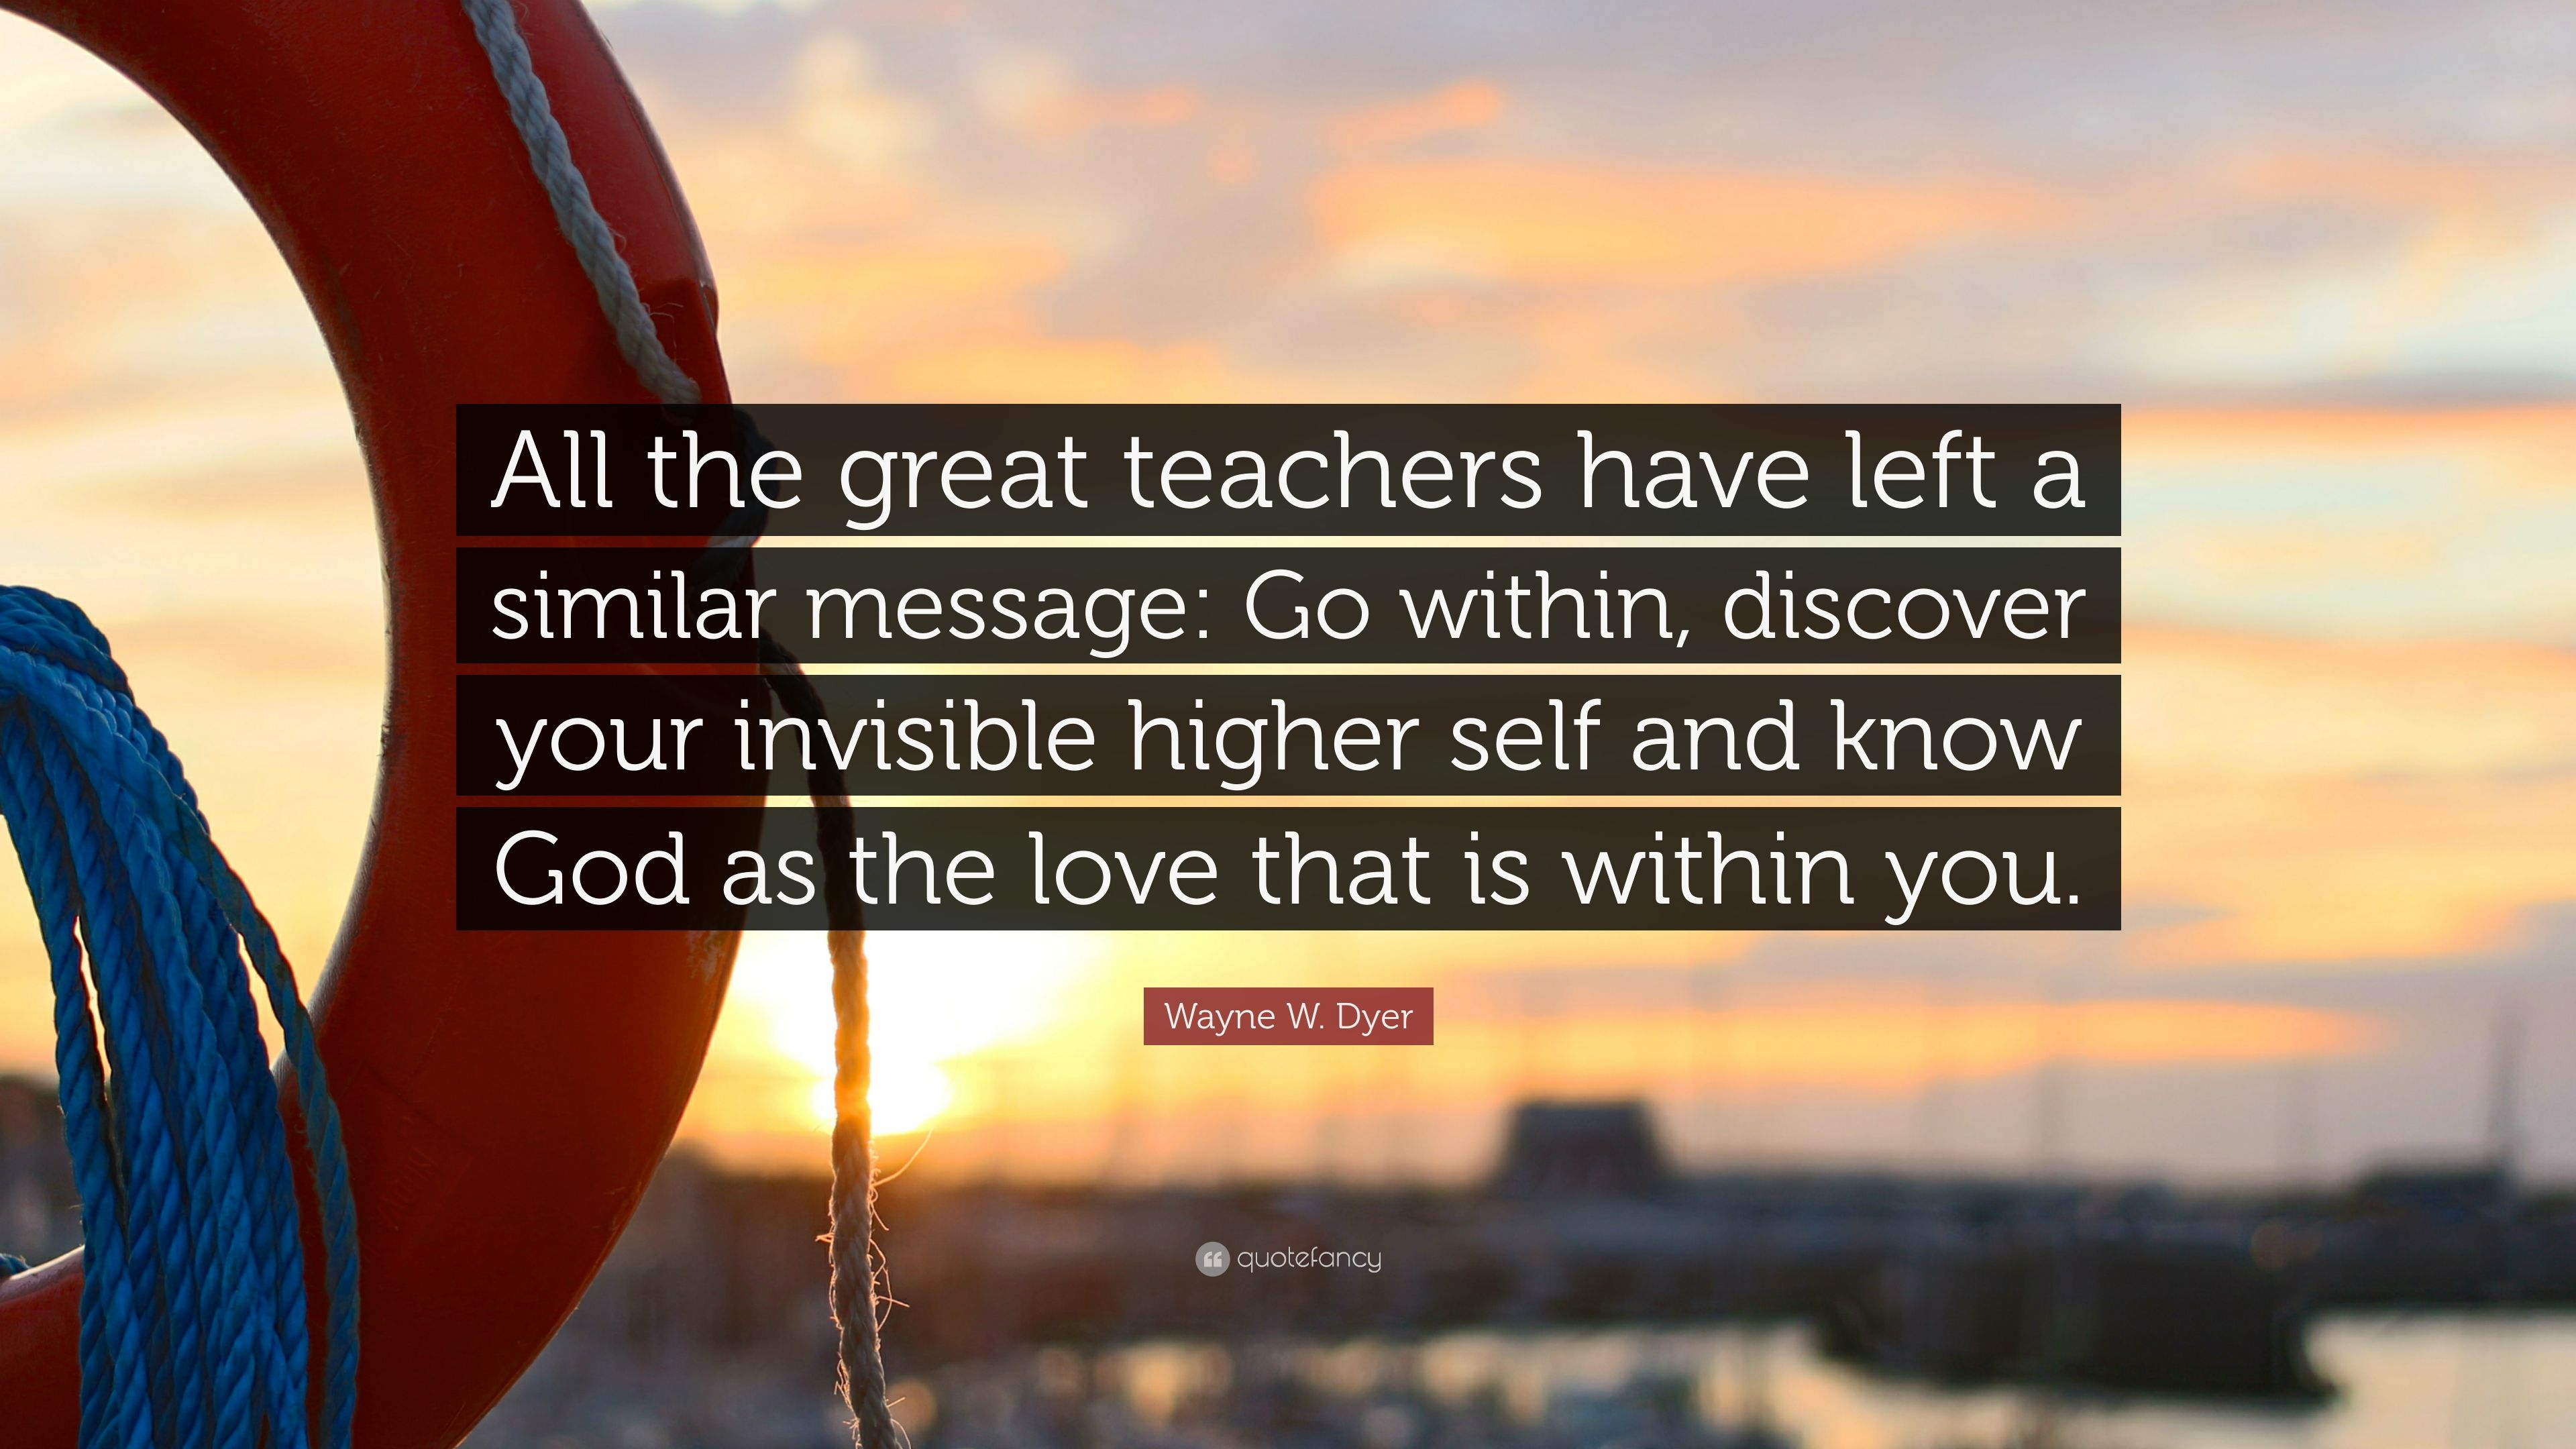 Wayne W Dyer Quote All The Great Teachers Have Left A Similar